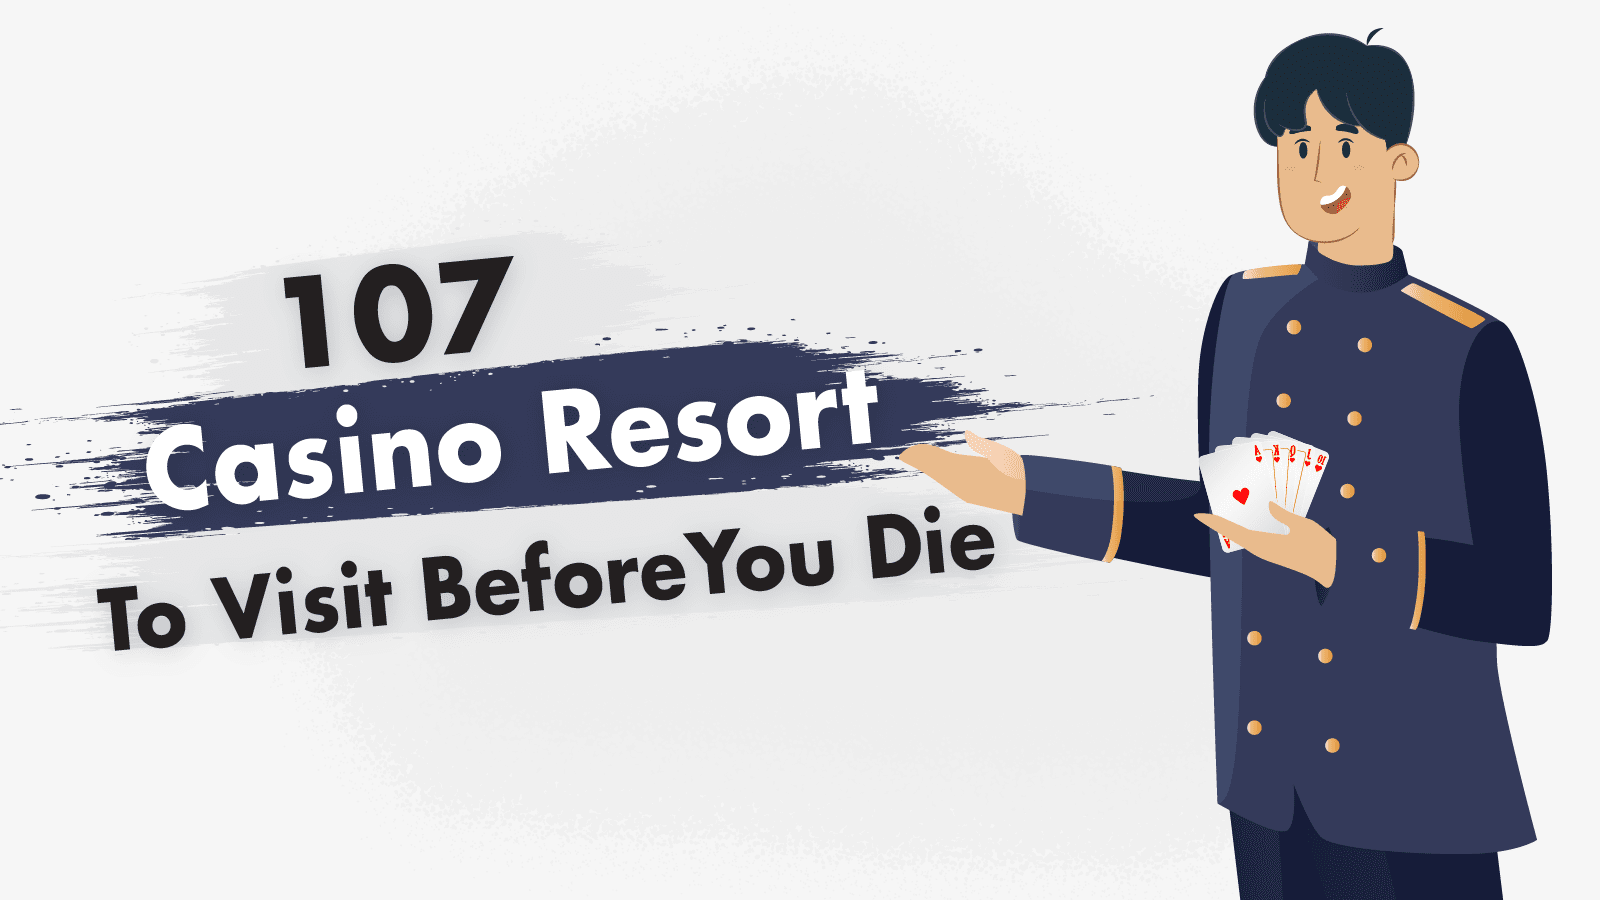 107 casino resorts to visit before you die